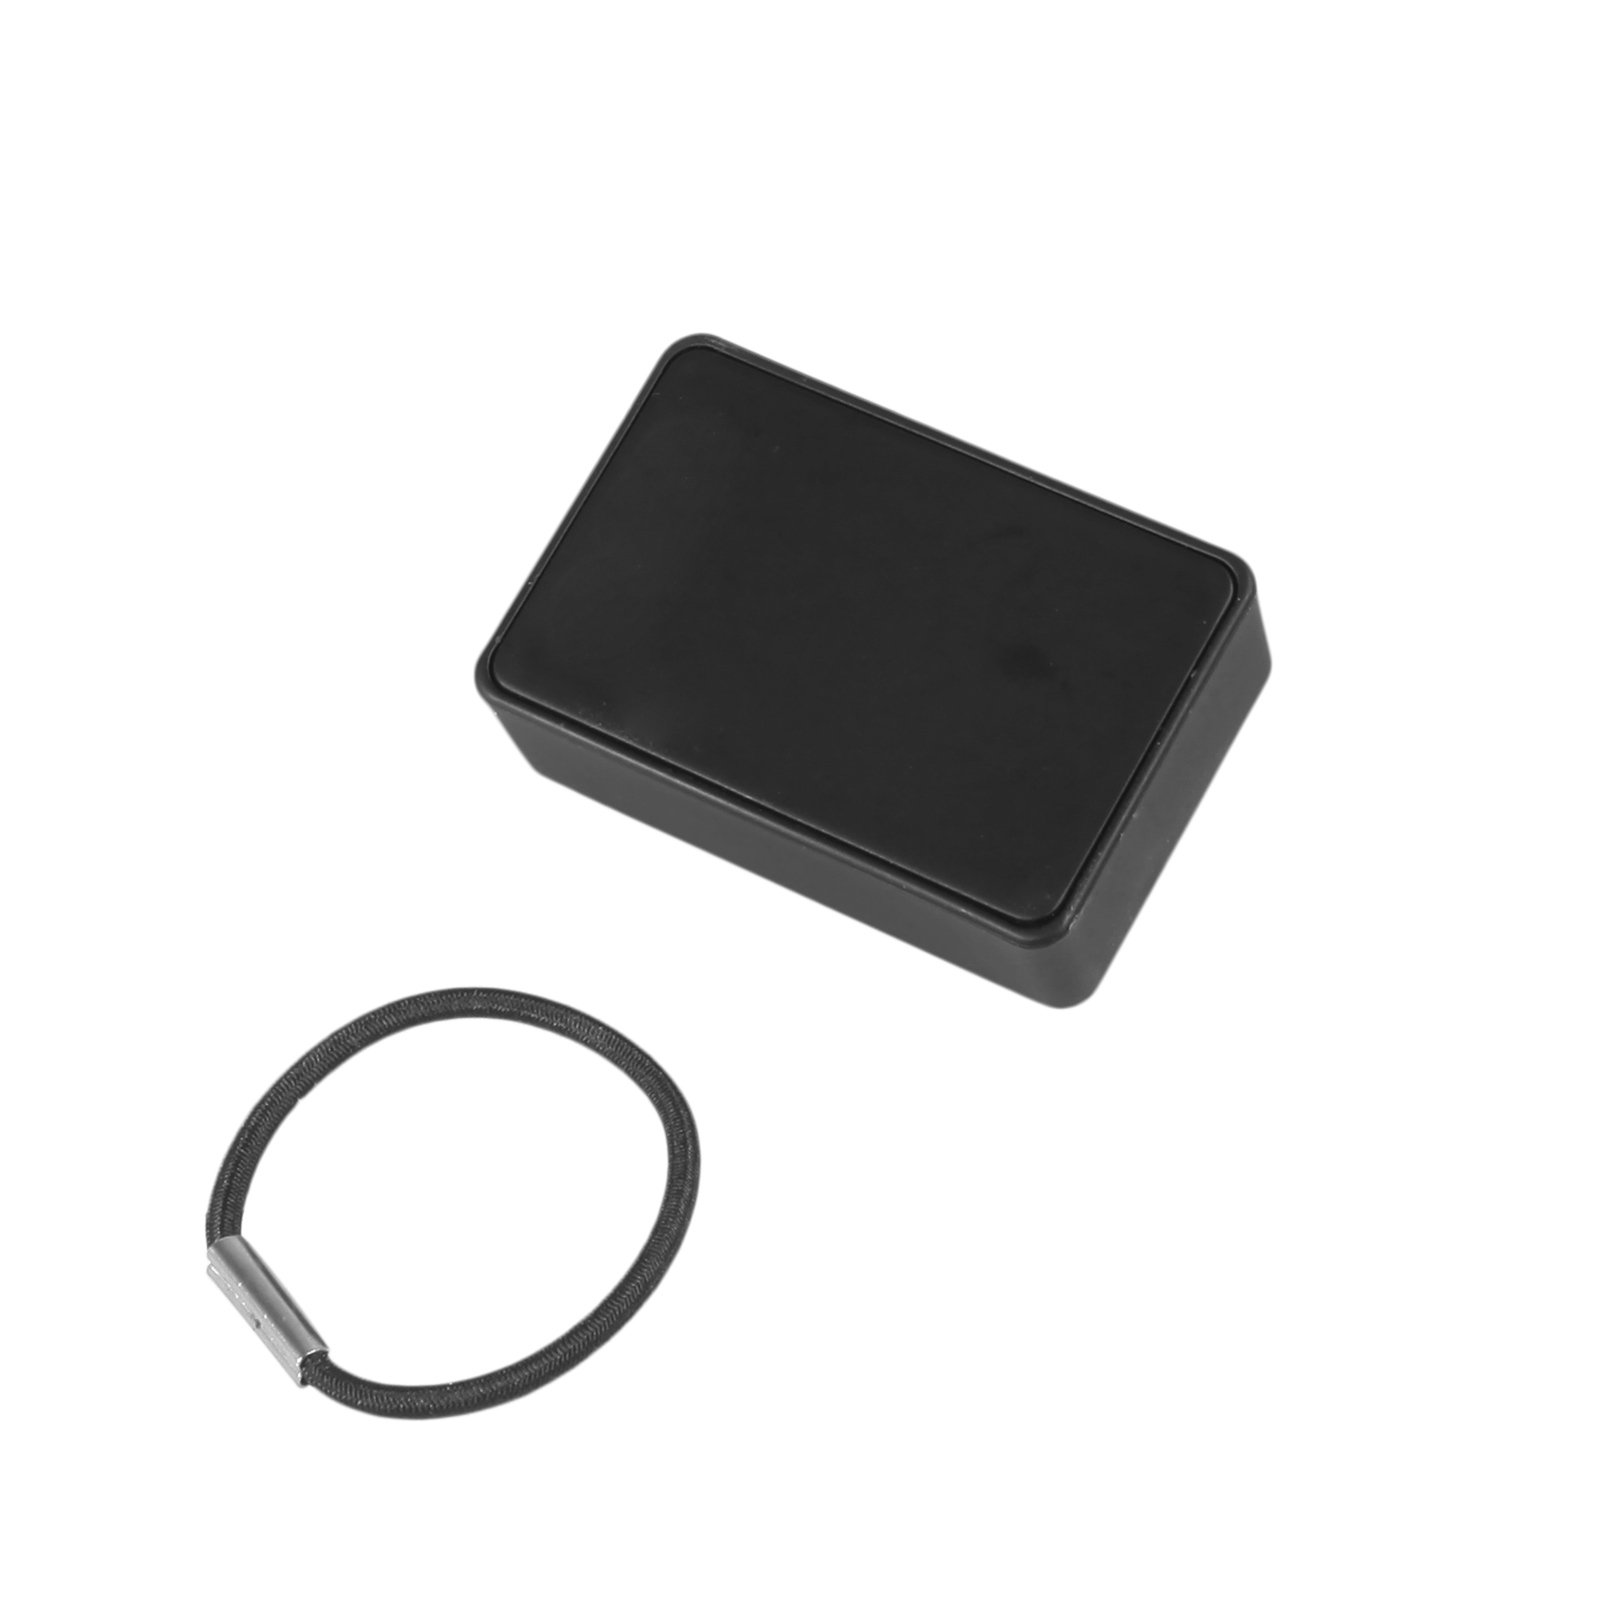 Mekingstudio LCD Screen Adapter Front Converter Selfie Adapter for Gopro LCD Touch Bacpac, Compatible with GoPro Hero 4 3 3+ and More by Mekingstudio (Image #4)